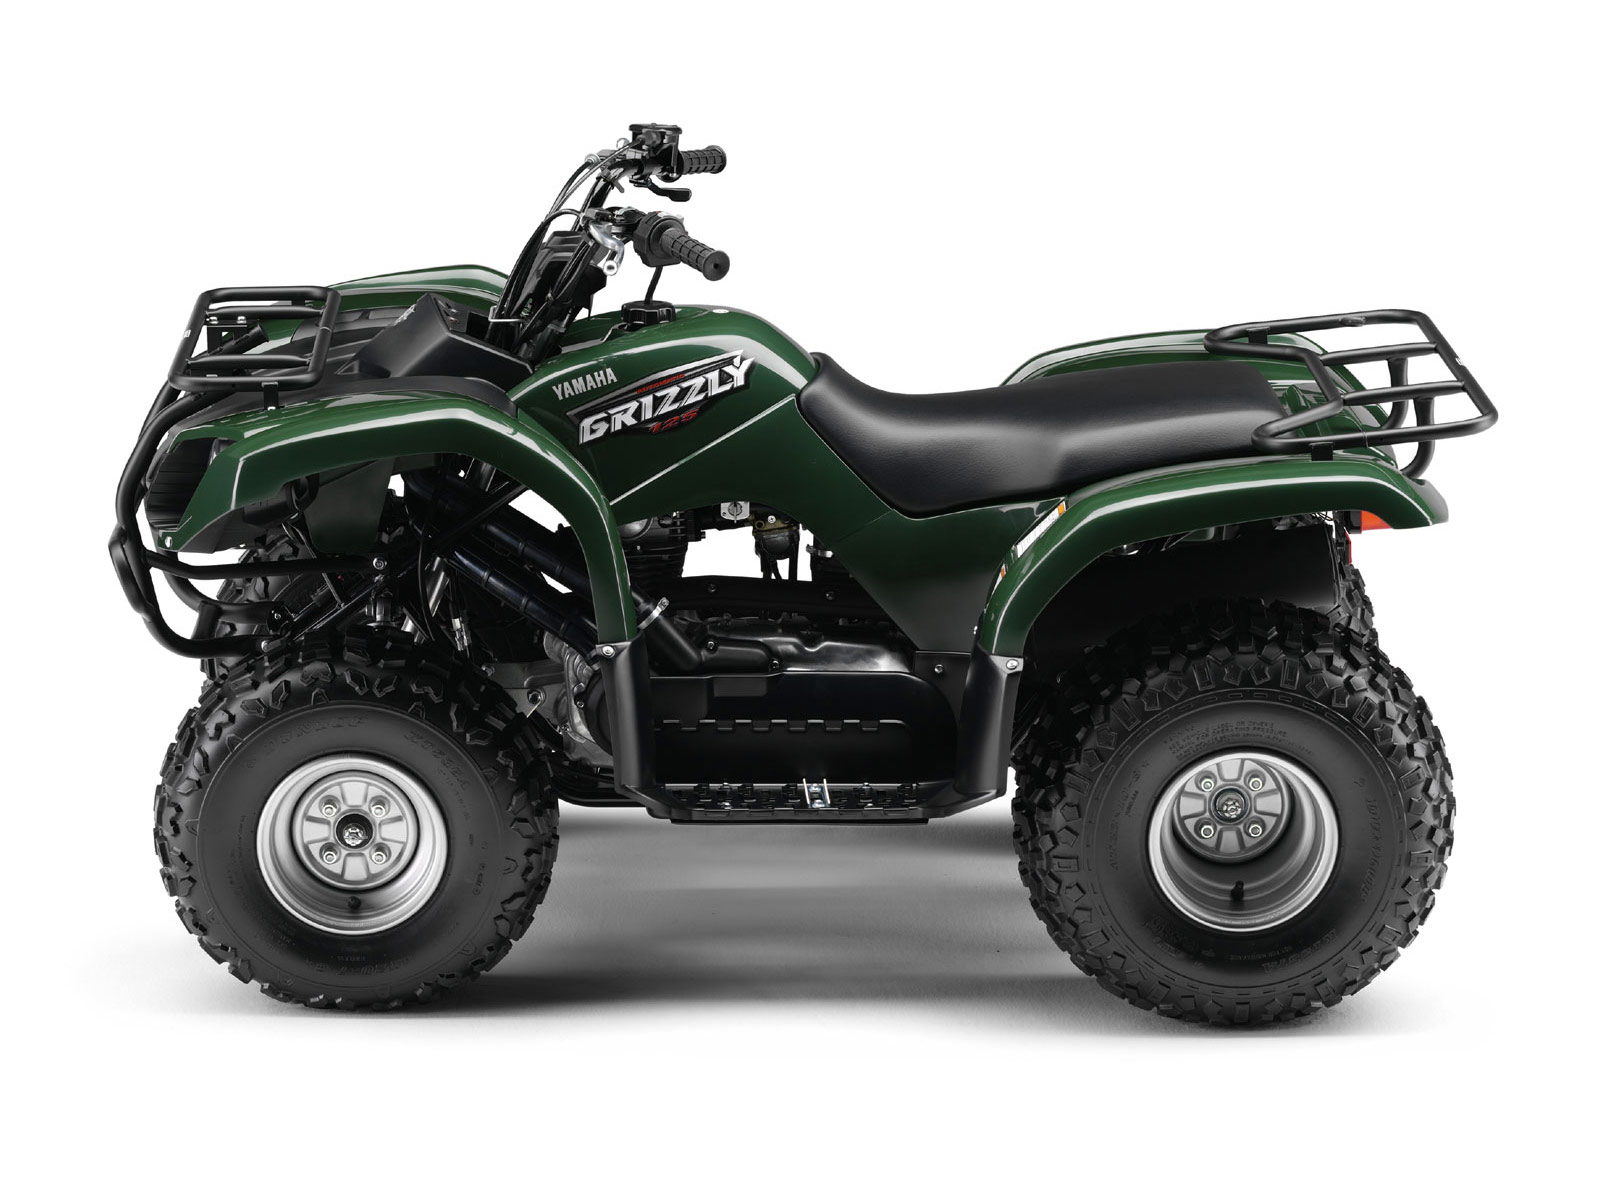 Foto moreover Yamaha Grizzly Eps Wthc Se Eu Satin Black Studio as well Img besides Hqdefault further Ccatv Quad Electric Full Set Parts Wire Cdi Ignition Coil Rely Rectifier Key Function. on yamaha grizzly 125 atv